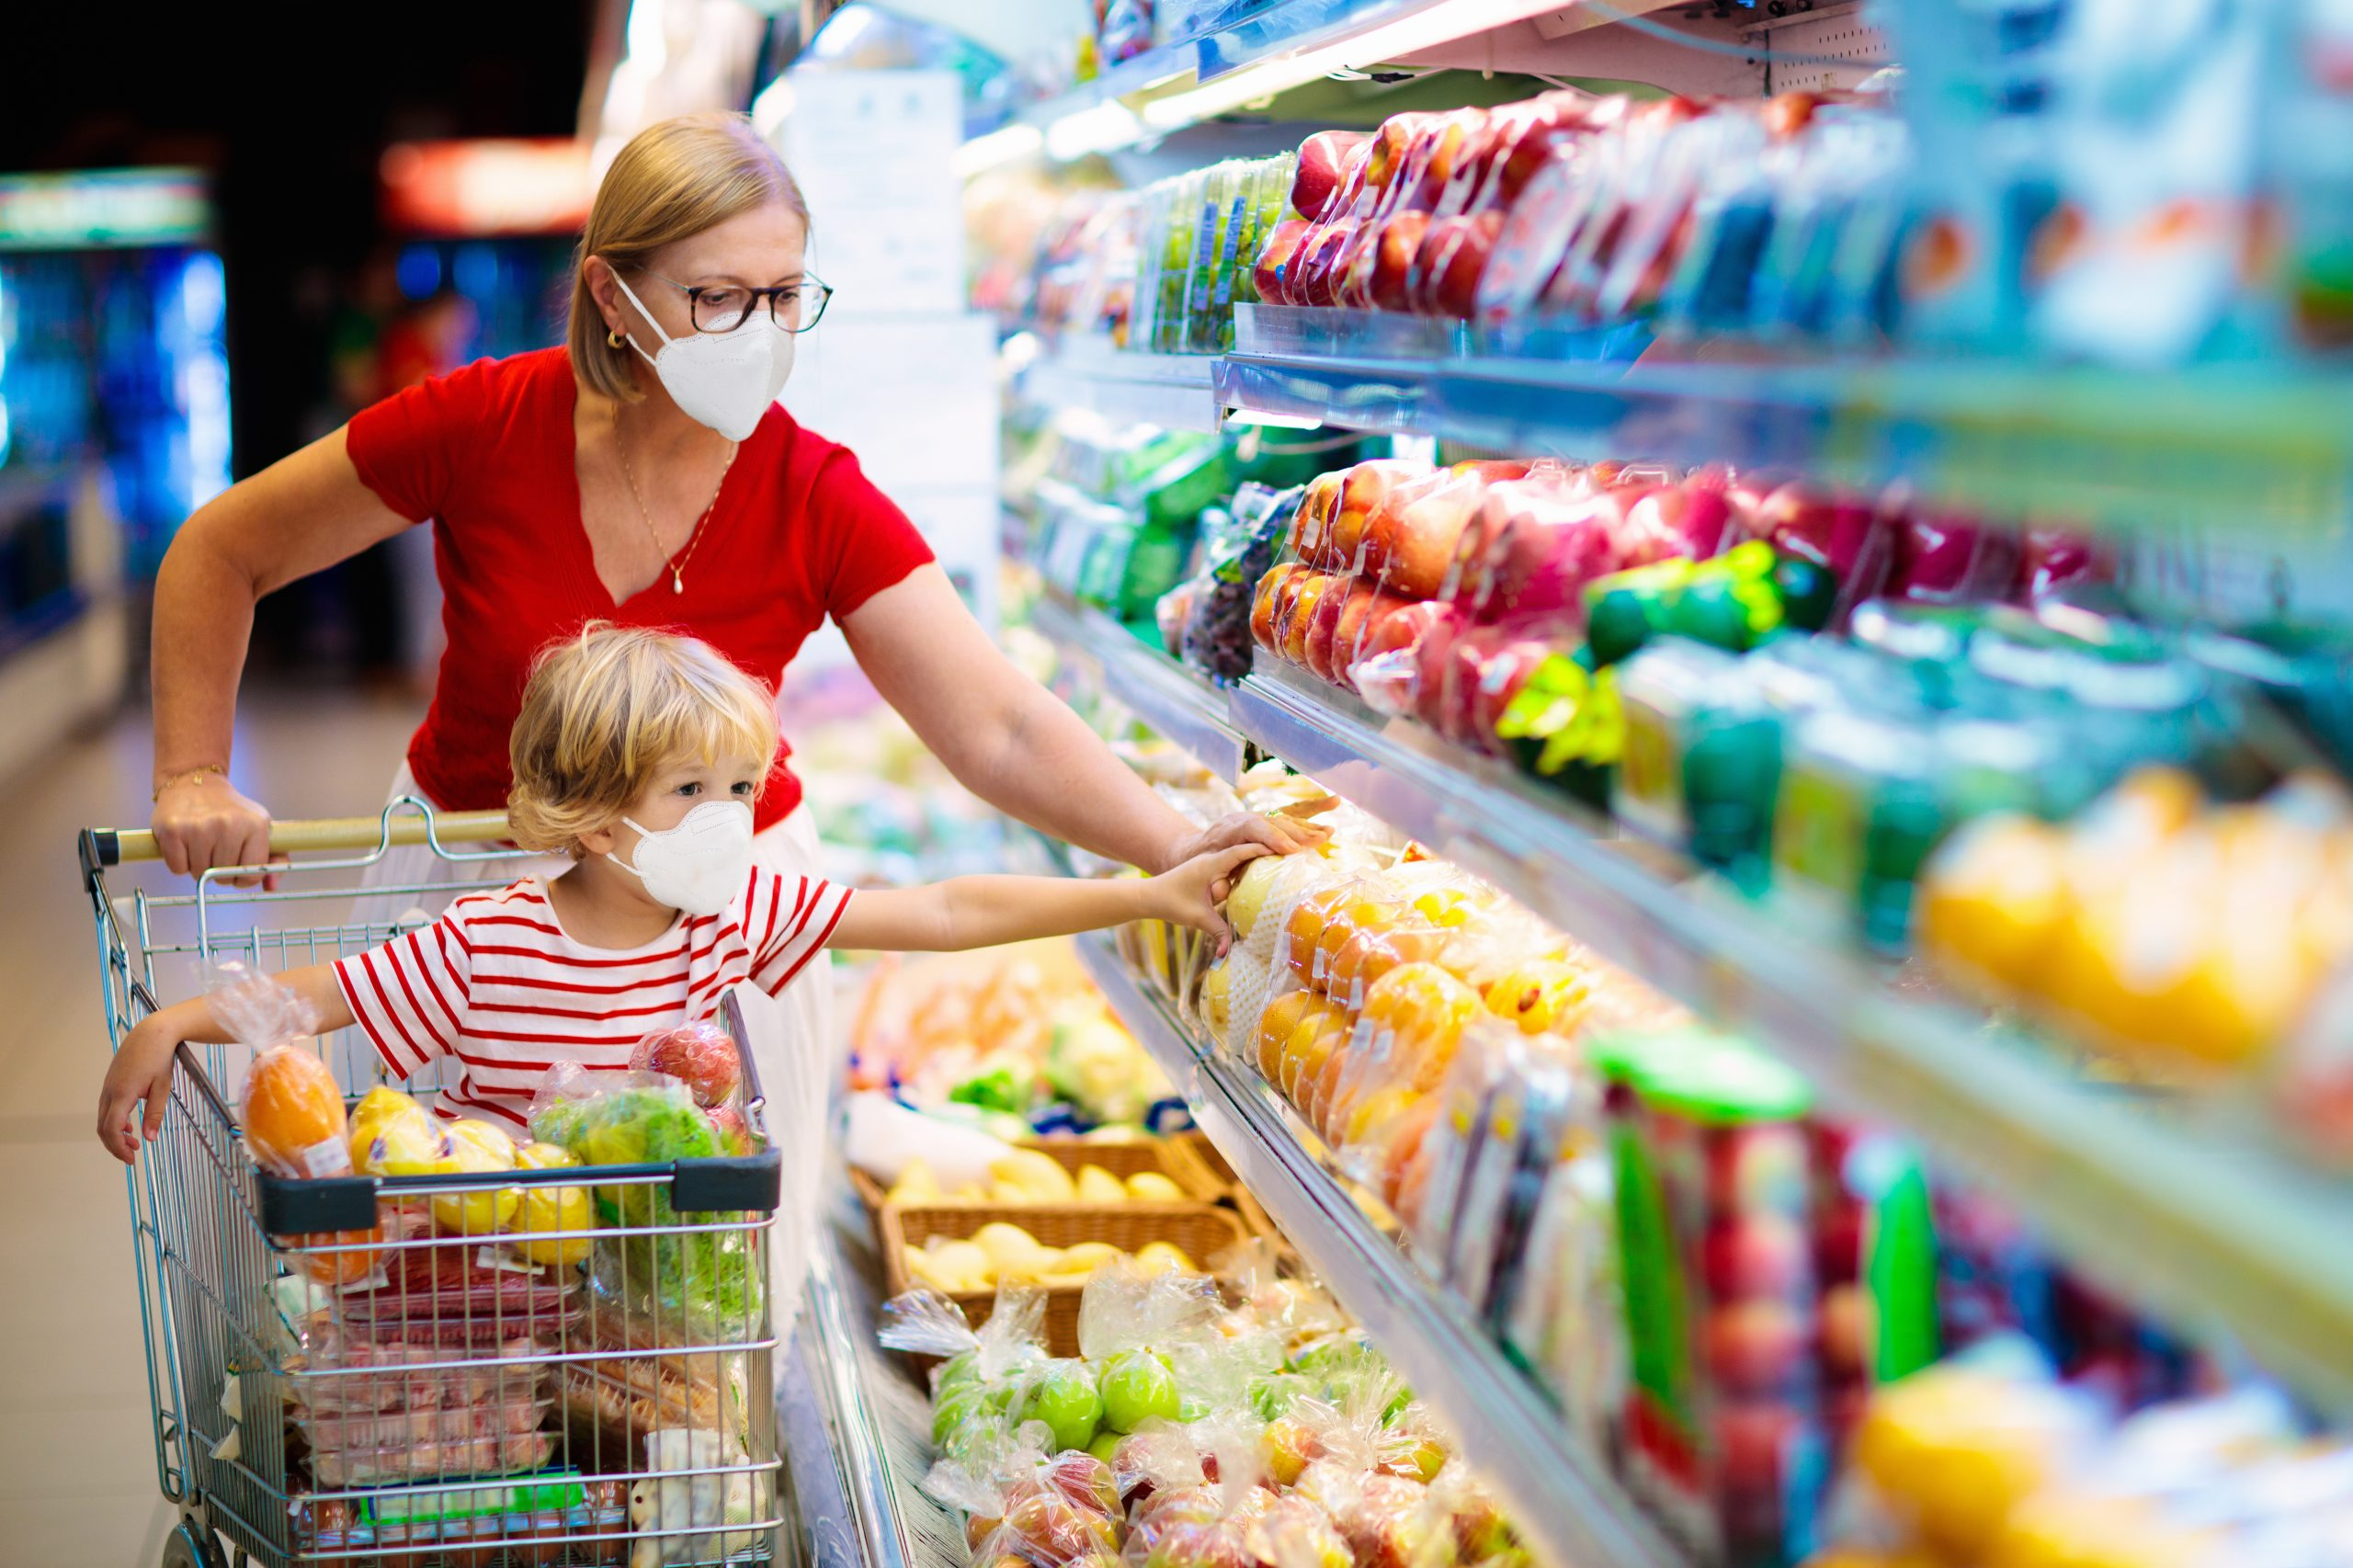 Mother and child buying fruit in supermarket.